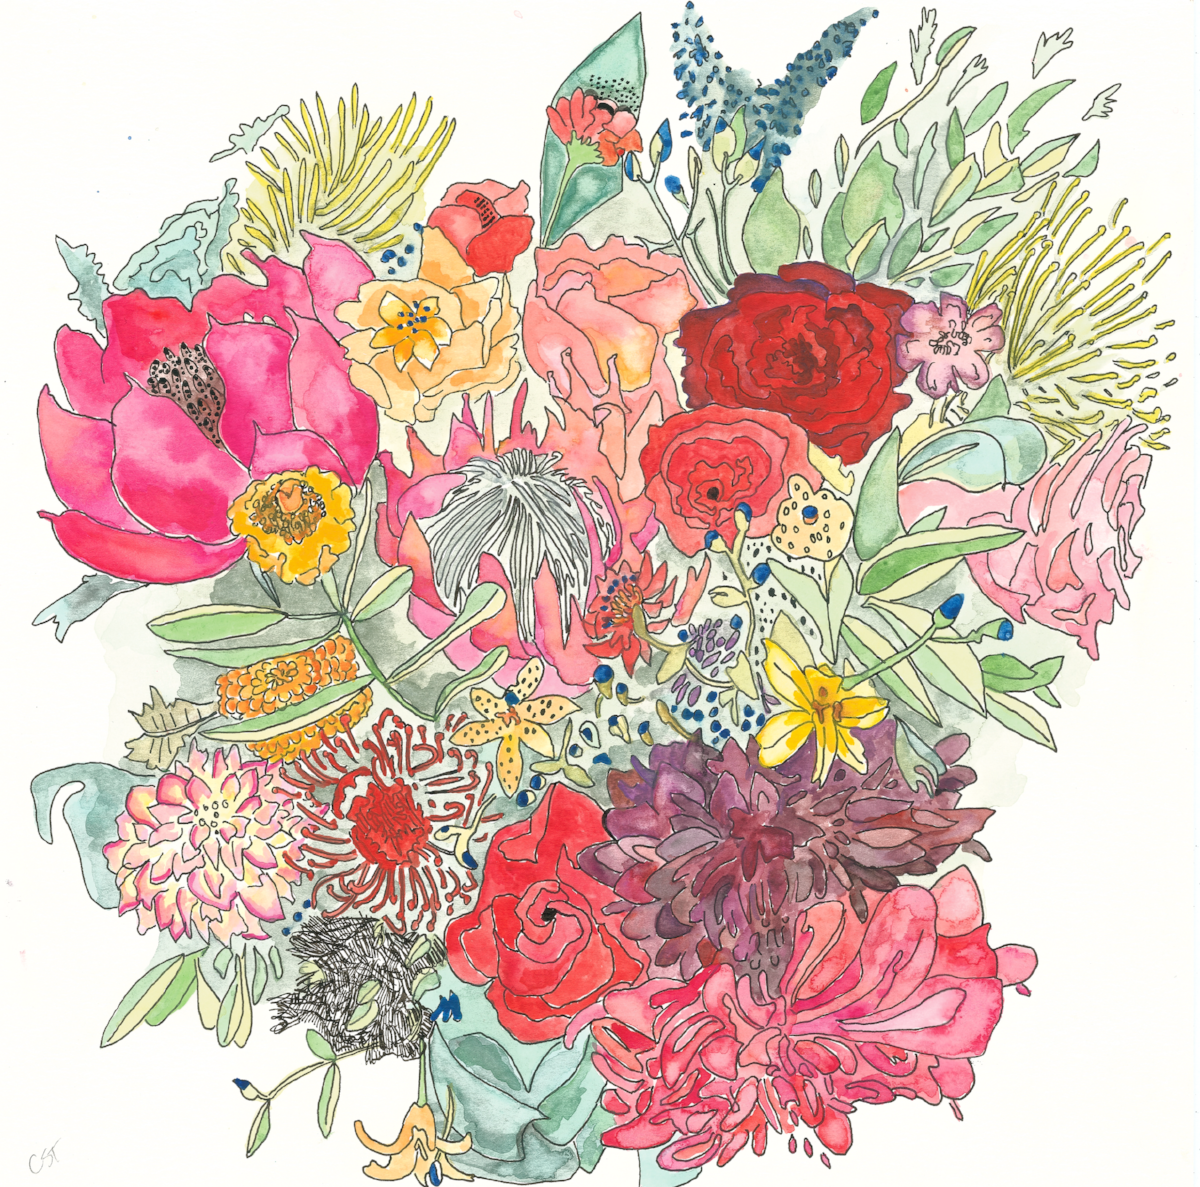 Floral Bouquet   Christina Scheppmann Thomas, 2015 Watercolor & Ink on Paper   Copyright Persika Design Co. LLC - Contact Christina@PersikaDesignCo.com to commission or collaborate!